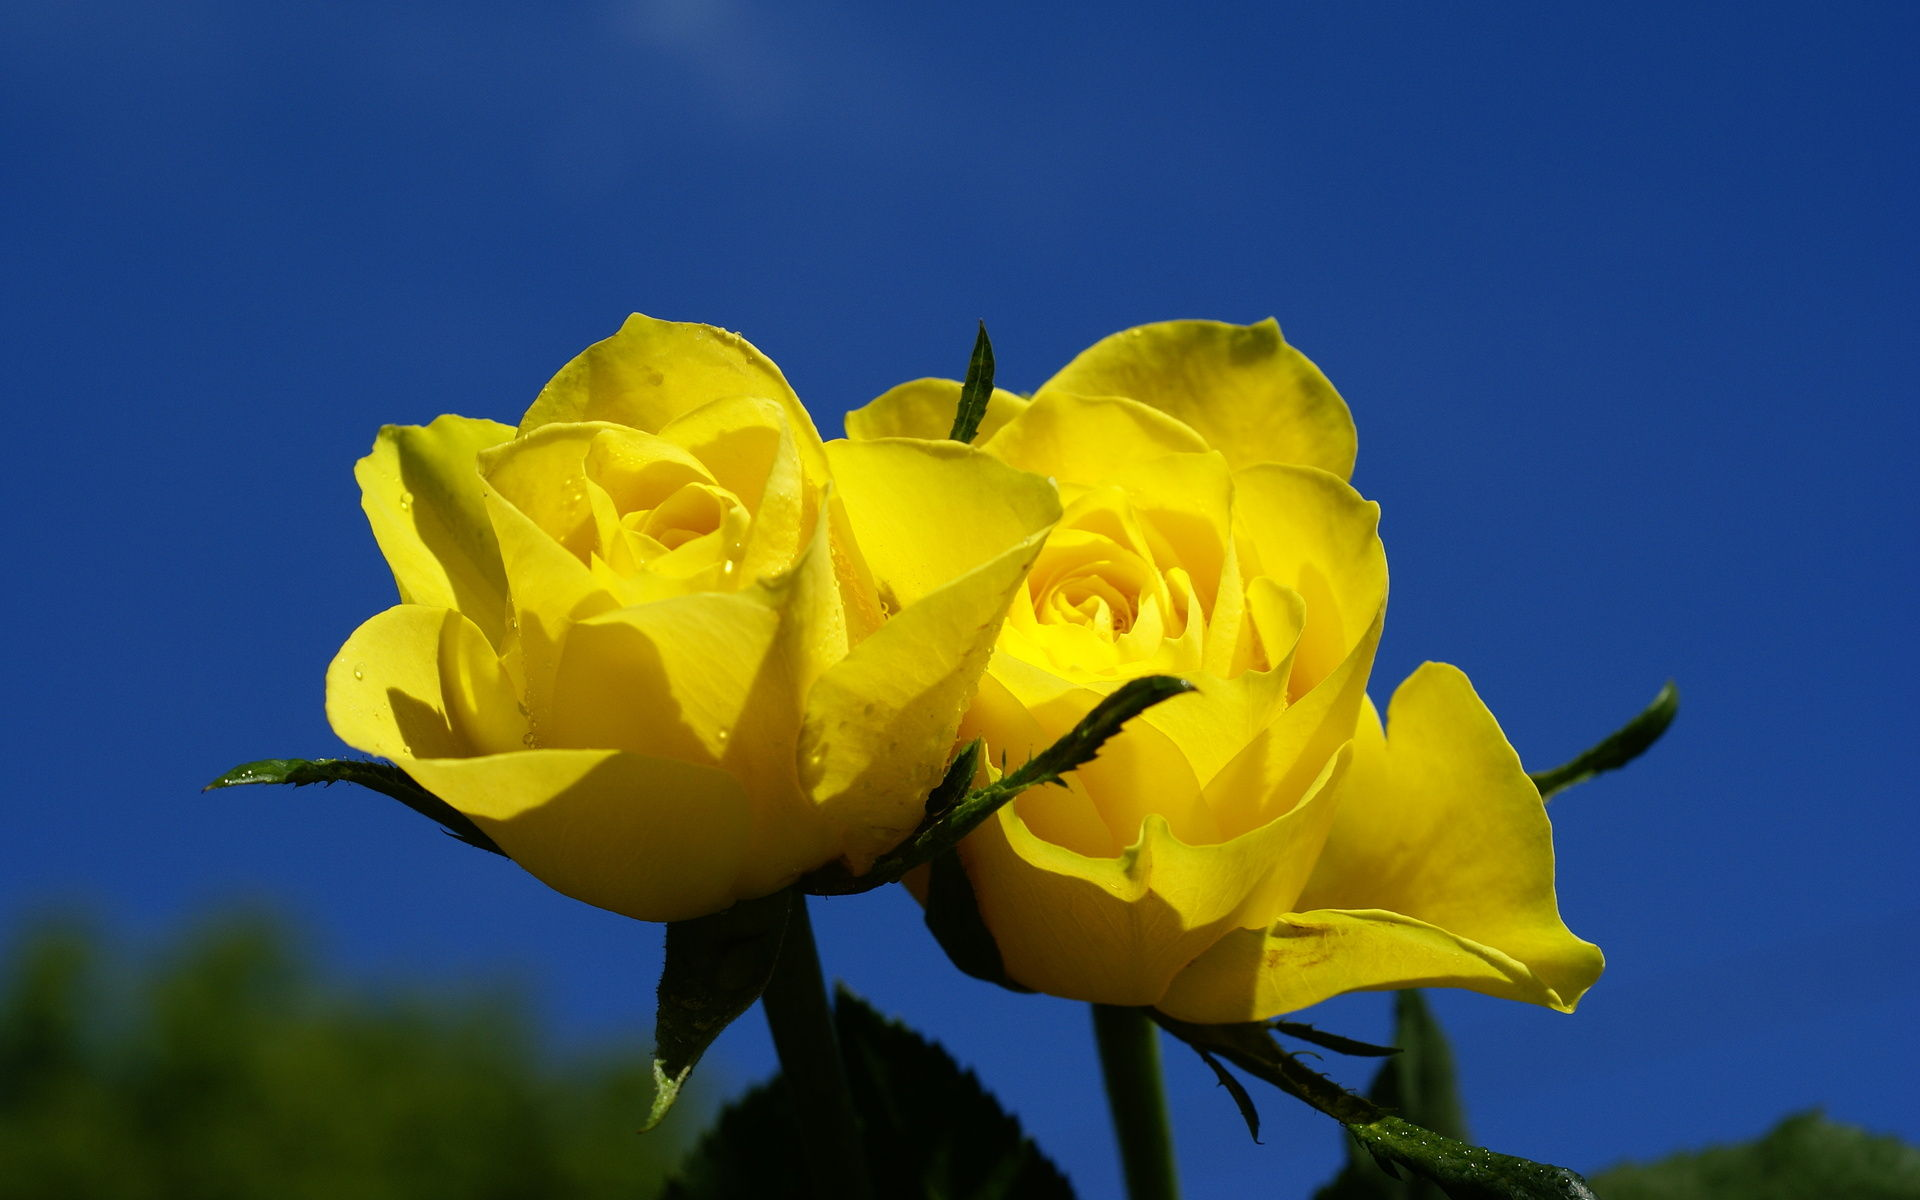 Yellow Roses Flower Picture for Fb Share